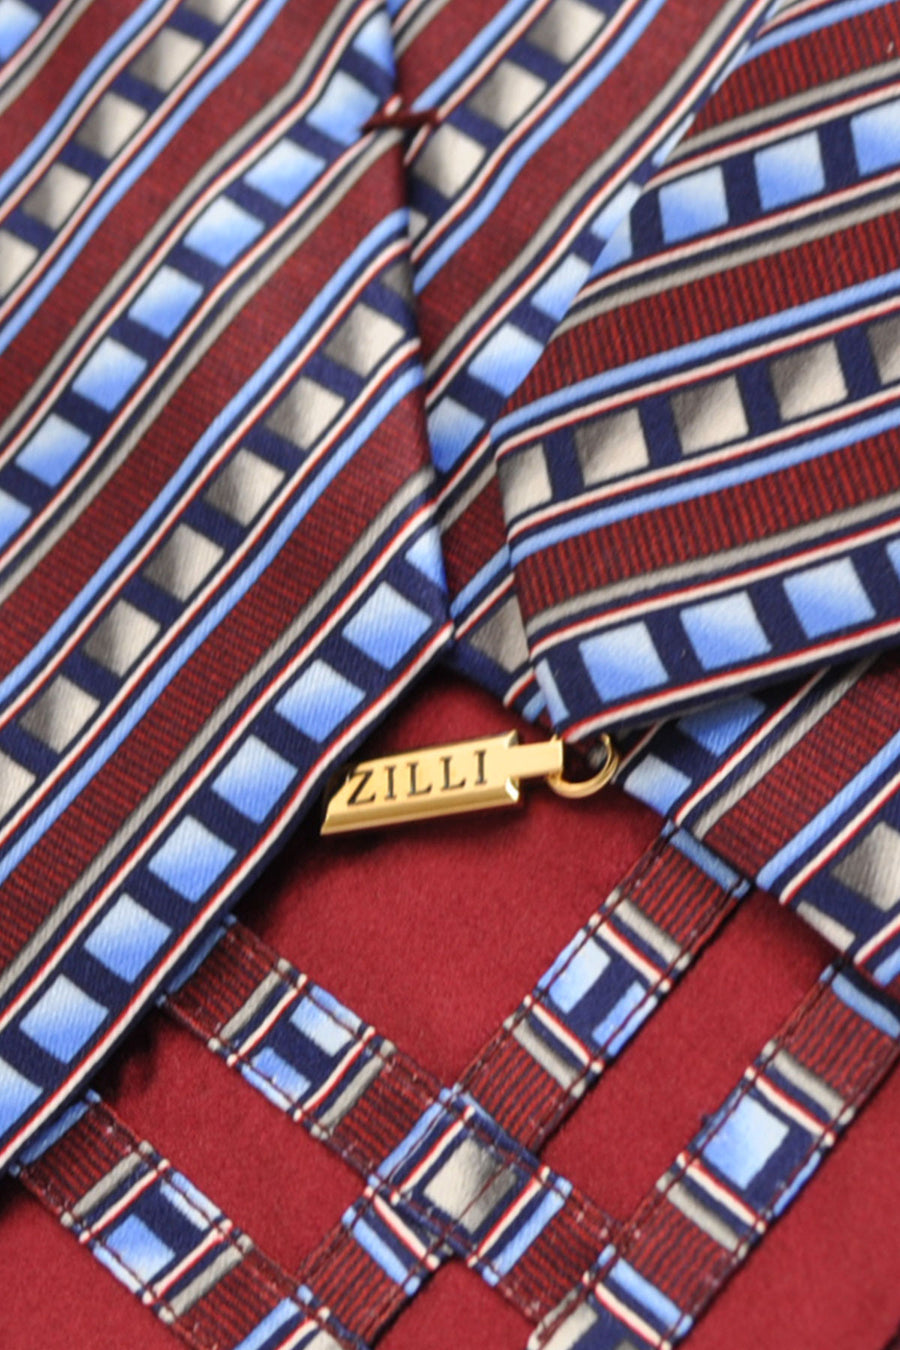 Zilli Tie Burgundy Blue Gray Stripes - Wide Necktie